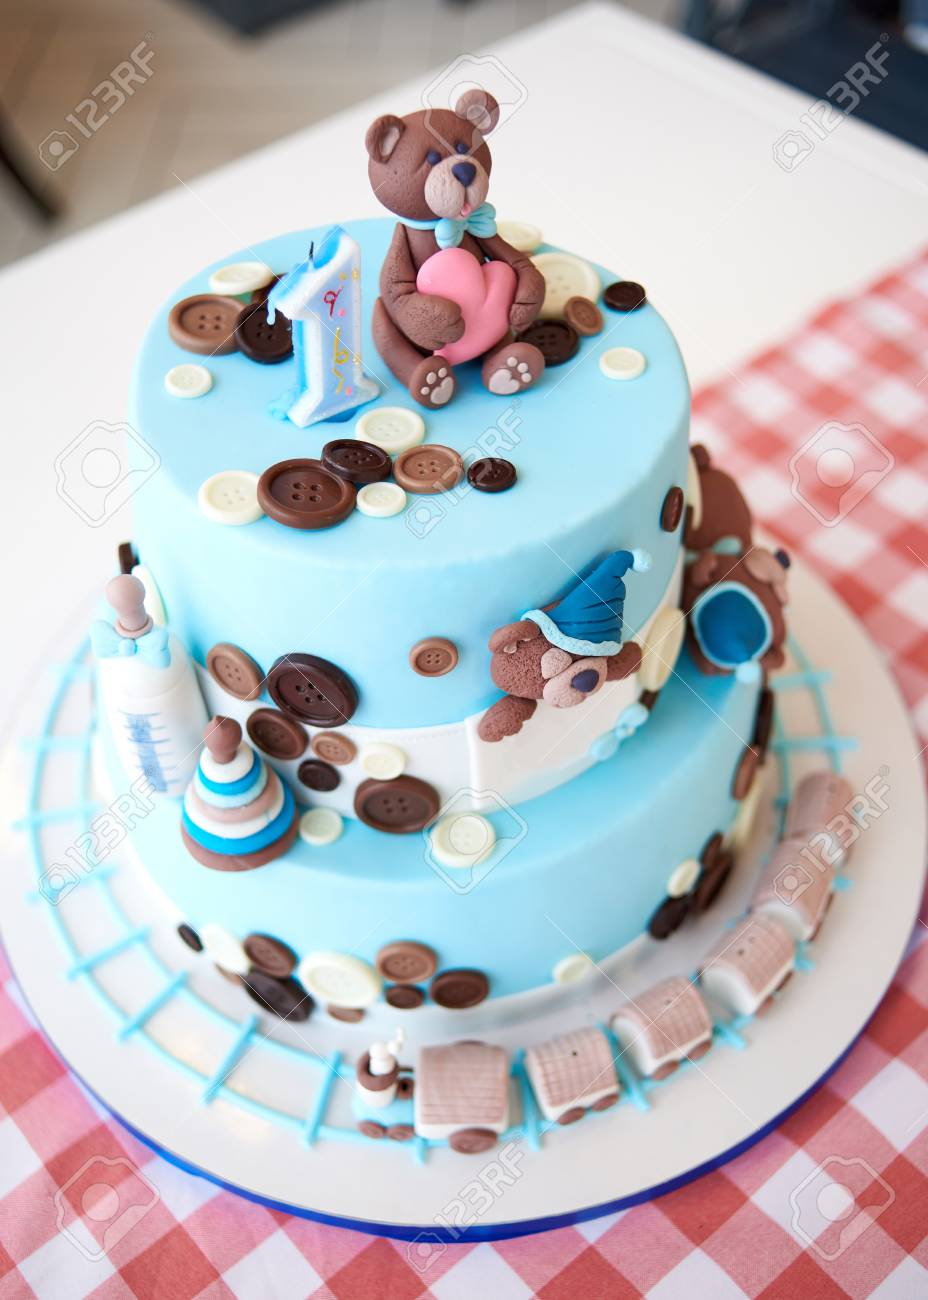 Round Multi Tiered Blue Birthday Cake Decorated With Button Stock